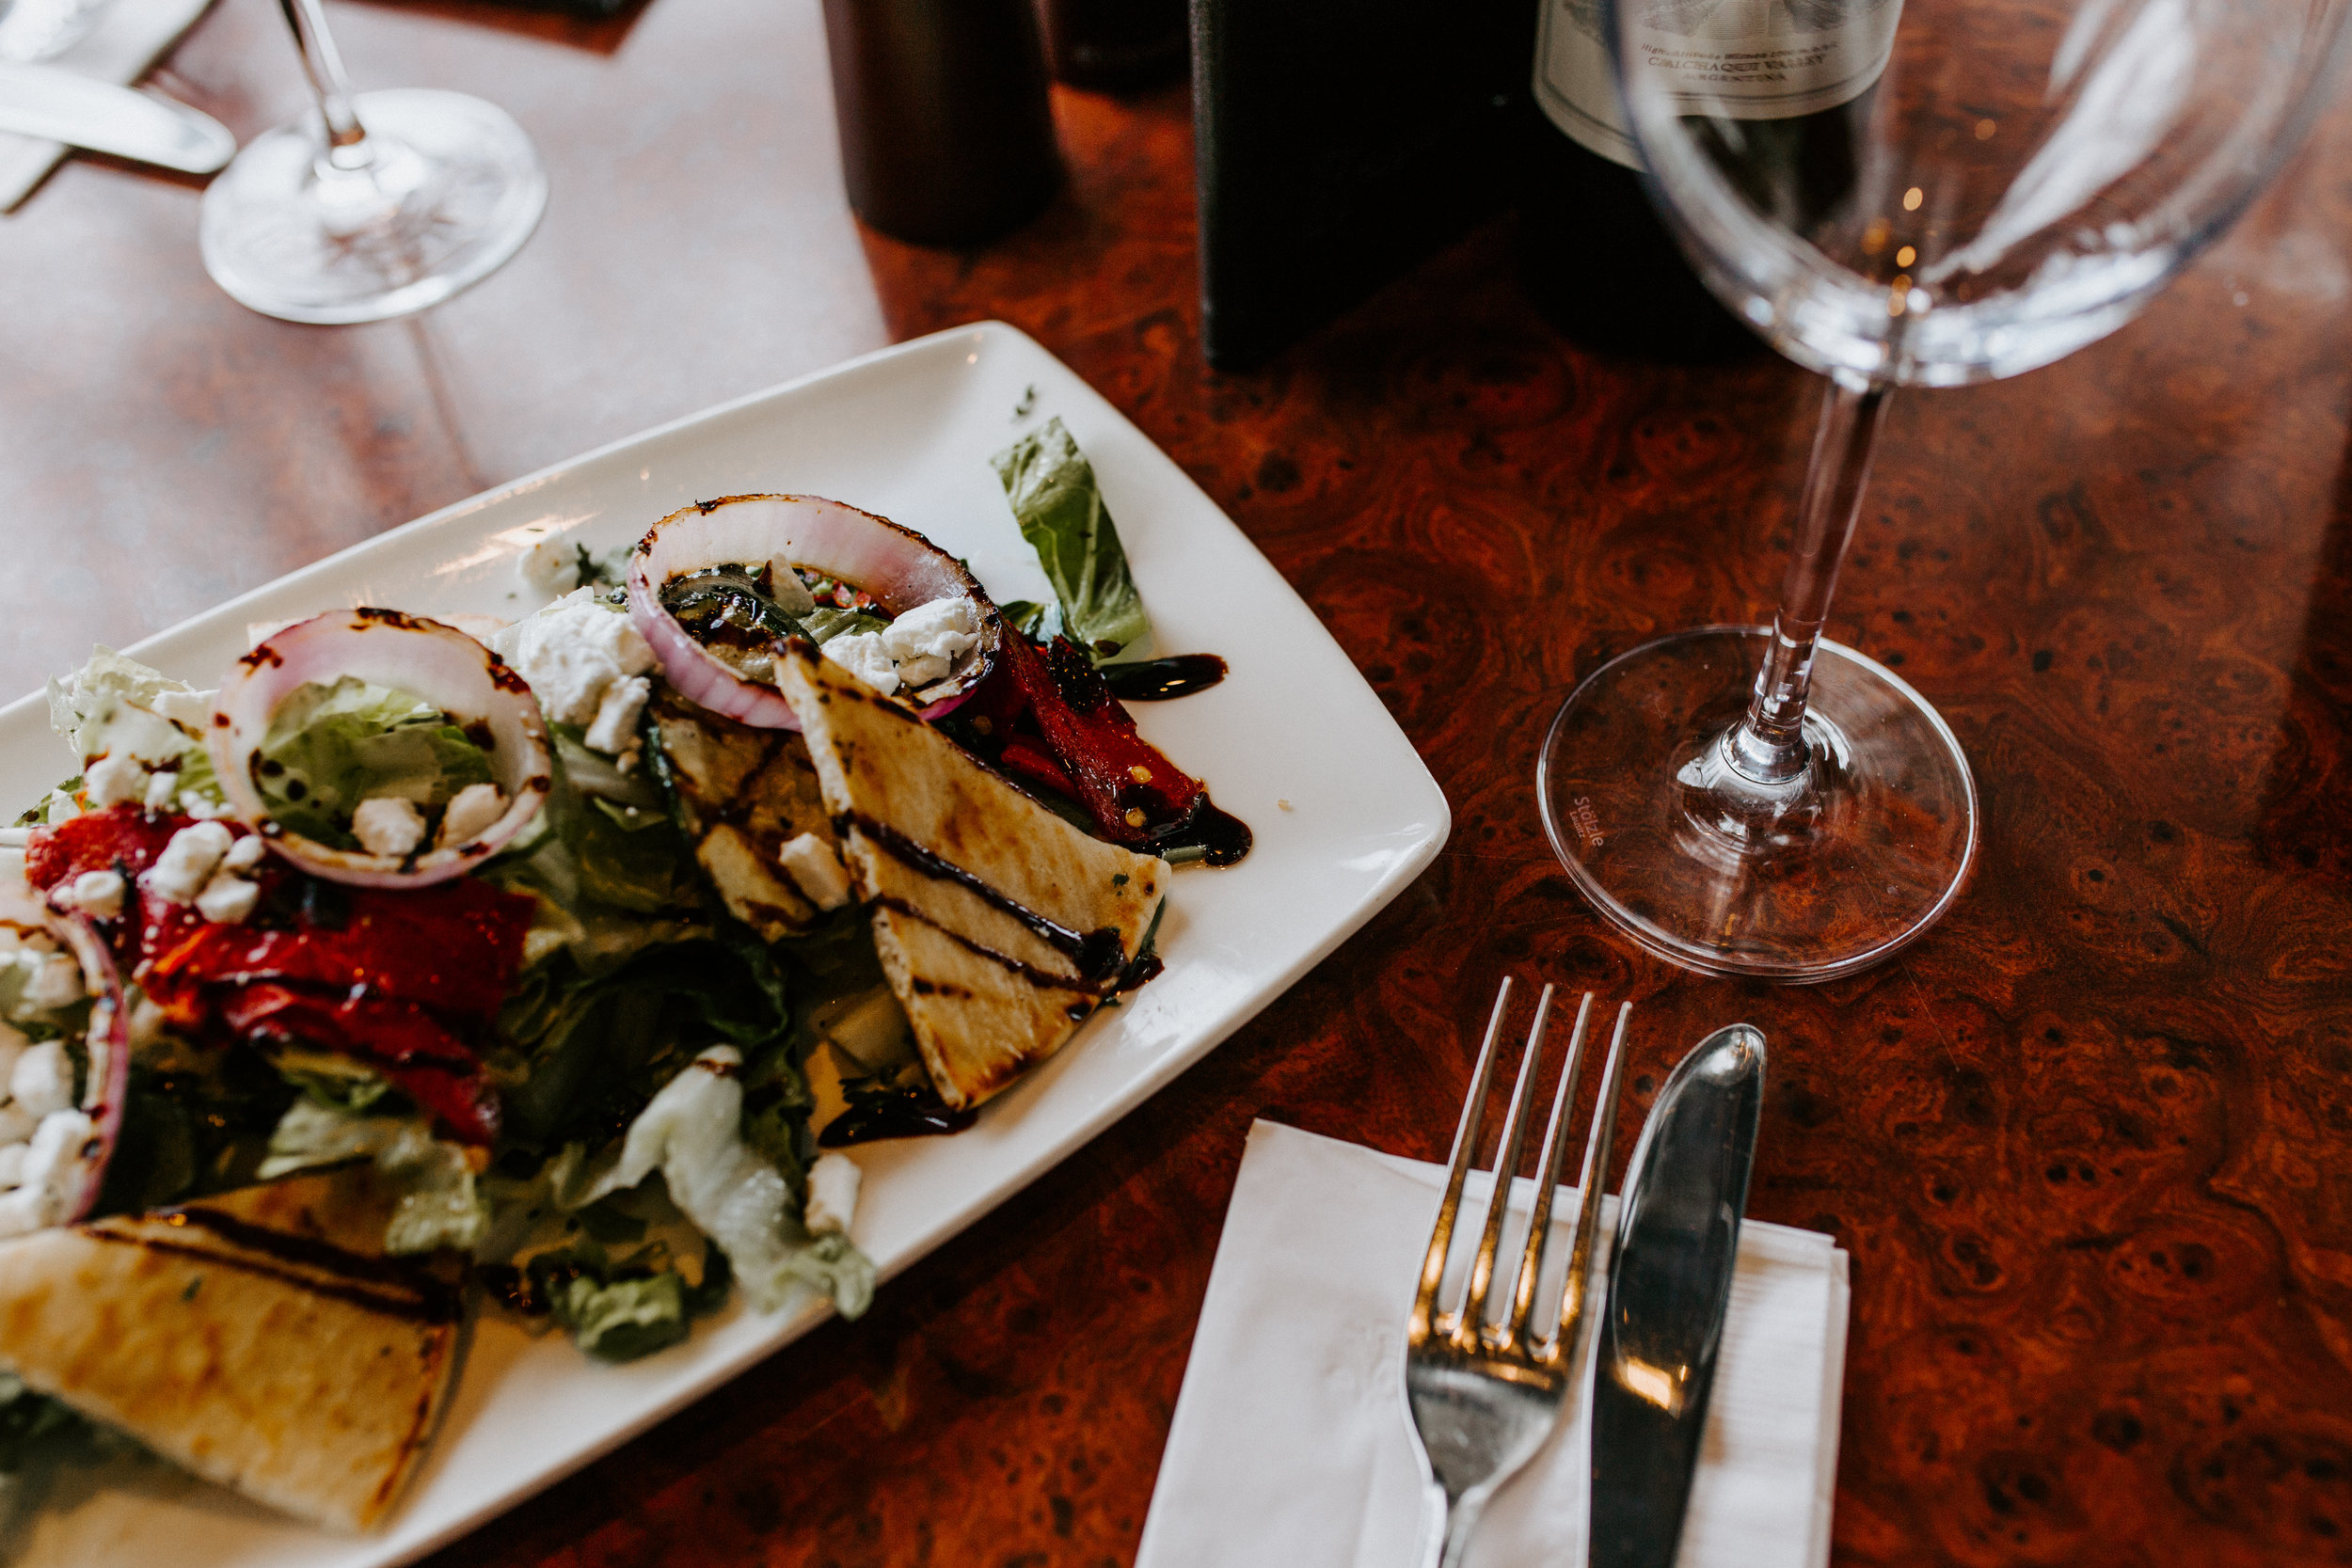 Fire-Roasted Vegetable Salad with Goat Cheese